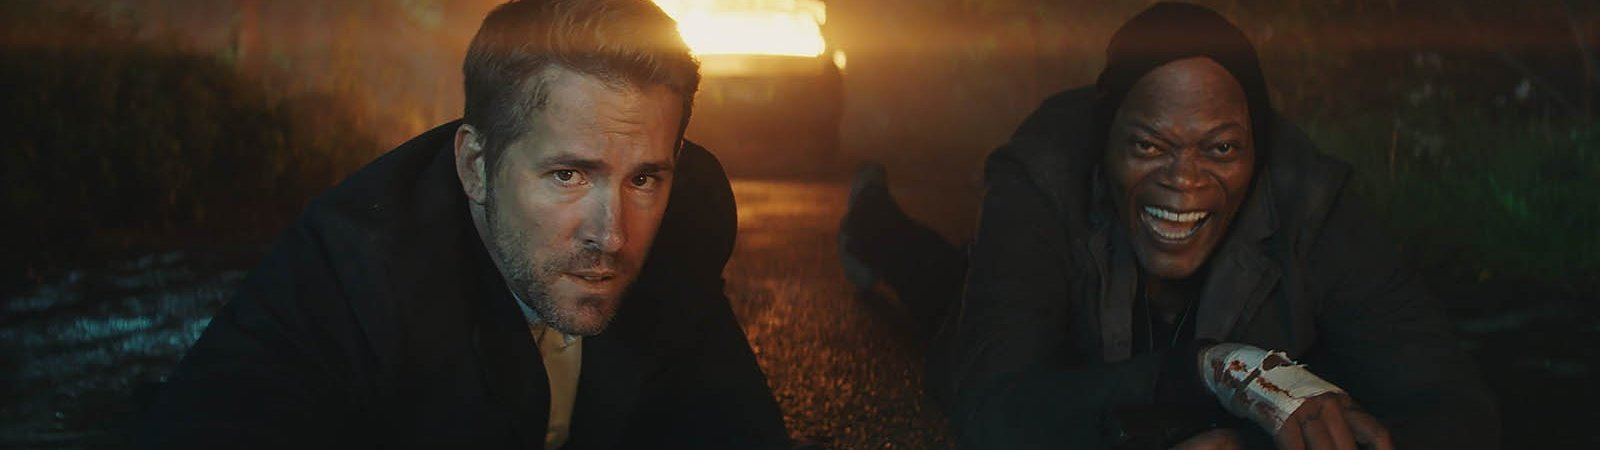 Photo du film : Hitman & Bodyguard